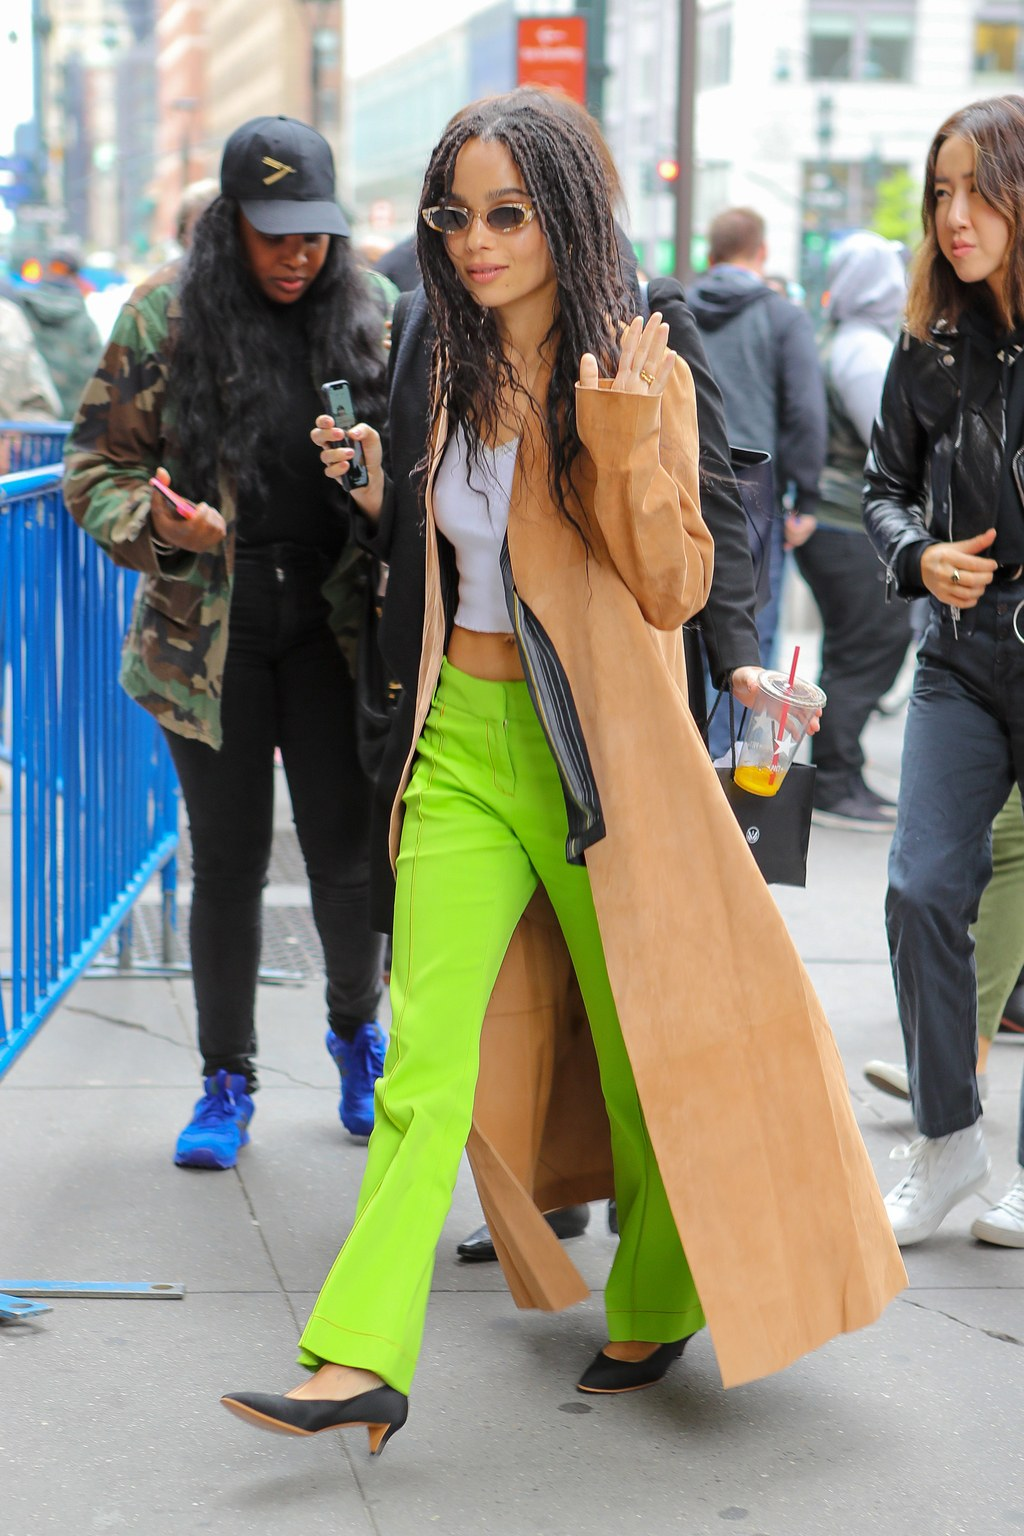 Zoë Kravitz waves to the camera before entering the Hulu Upfronts Convention.